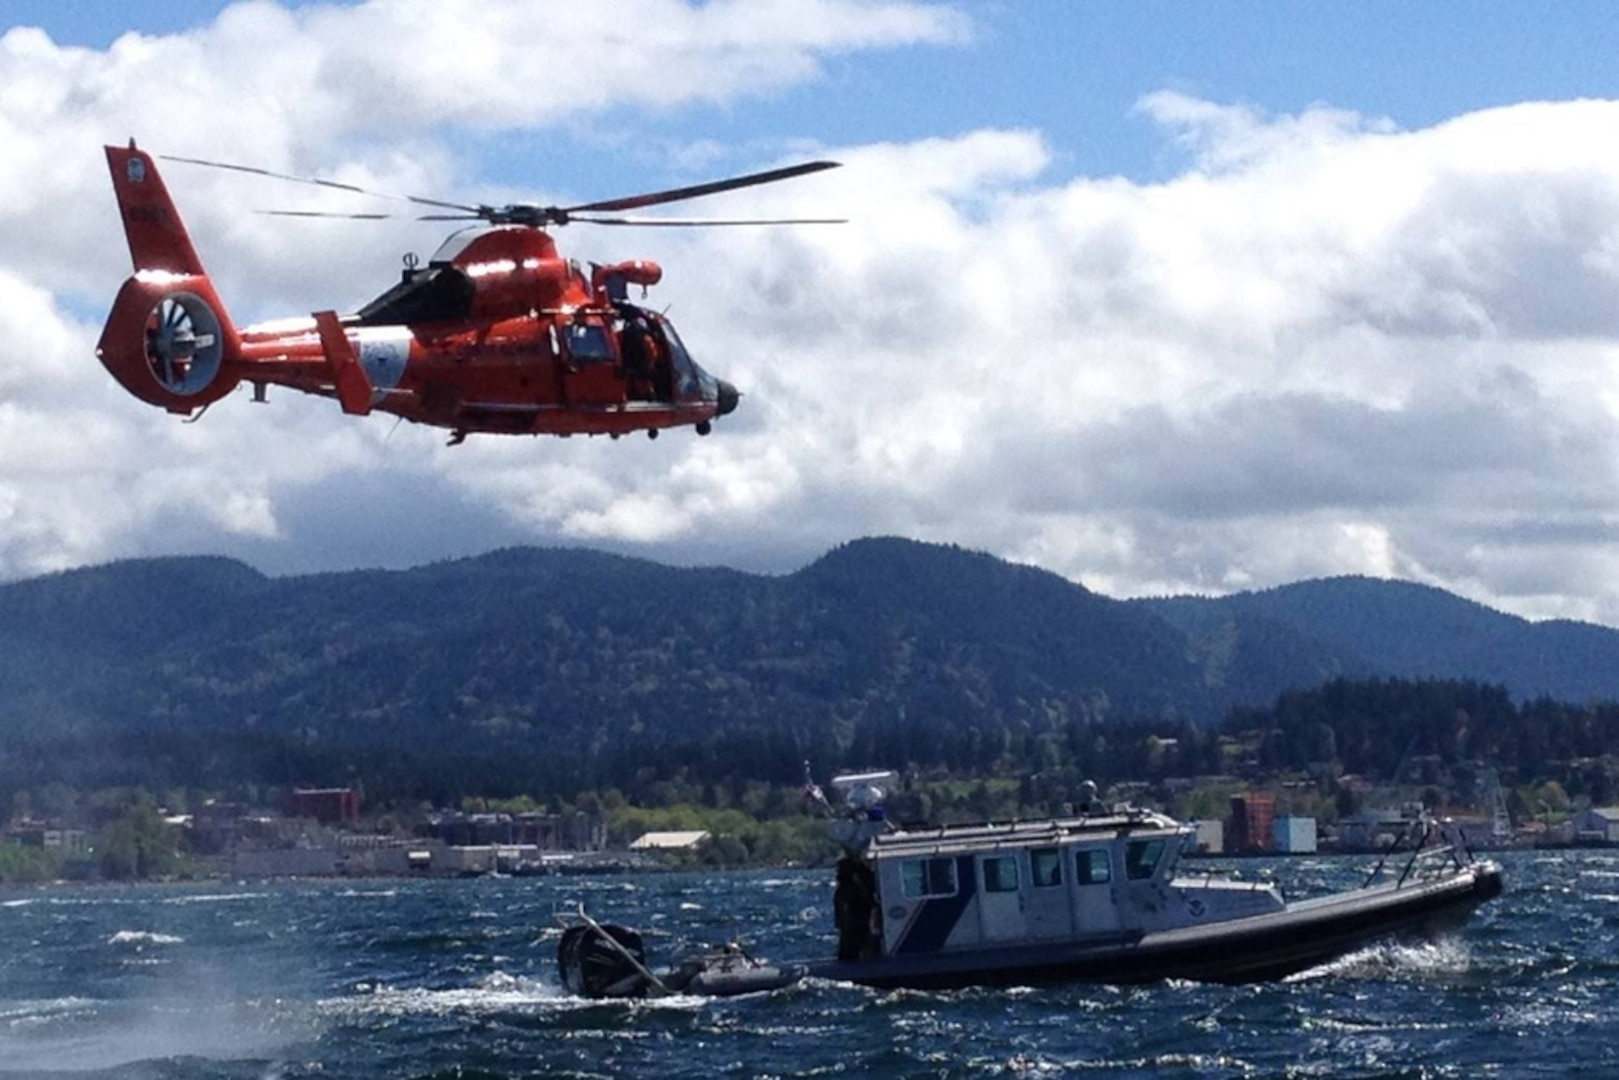 Multiple U.S. and Canadian partner agencies planned and executed four large-scale interagency, binational operations throughout the summer. The various maritime law enforcement and security missions were held to deter illicit activities in the region, uphold multi-agency interoperability, and to ensure mission capabilities throughout the Puget Sound, San Juan Islands, and Strait of Juan de Fuca. (Courtesy photo)